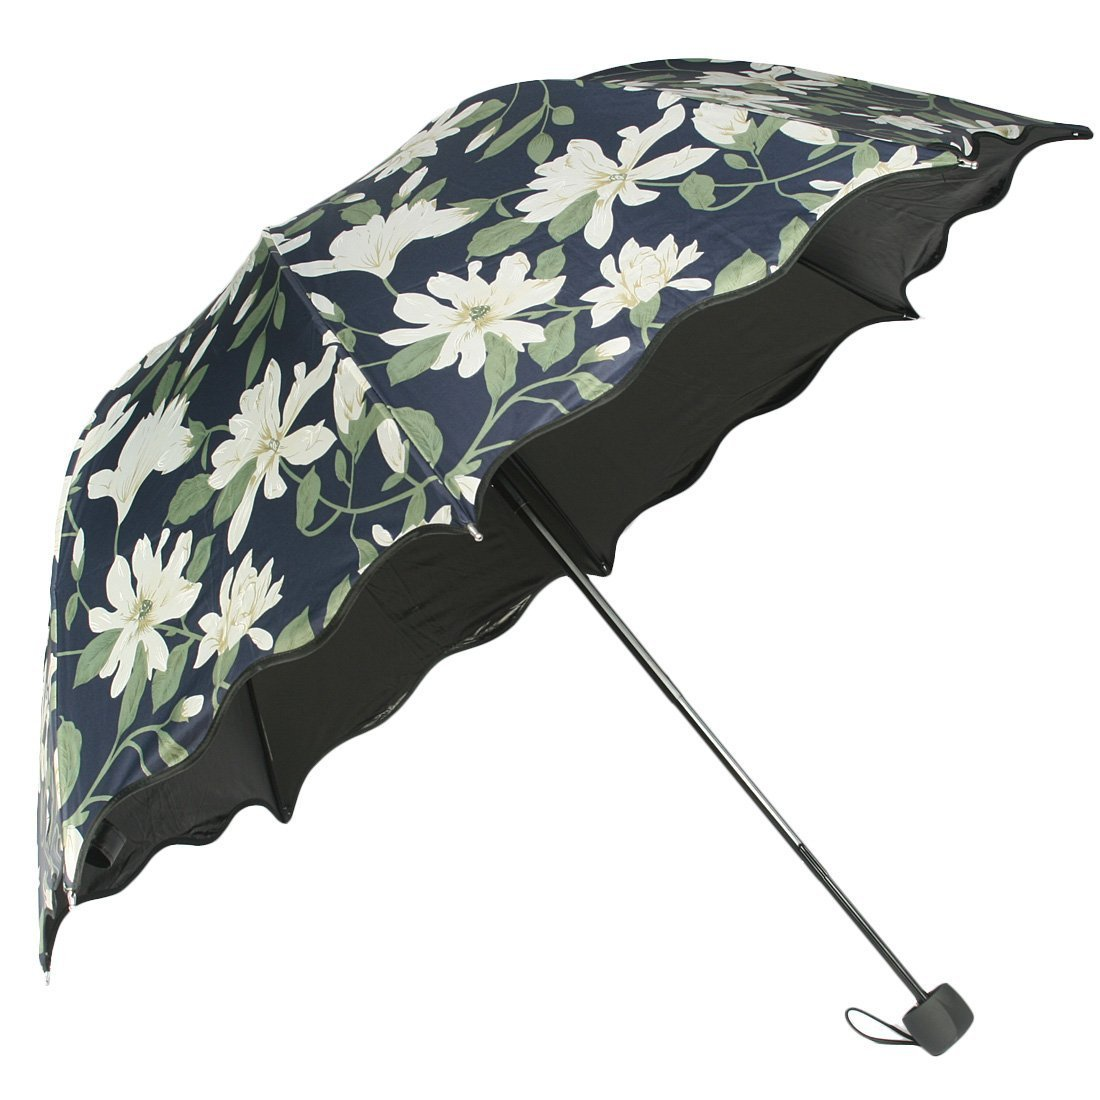 kilofly Anti-UV Folding Travel Parasol Vintage Floral Rain Sun Shade Umbrella 0